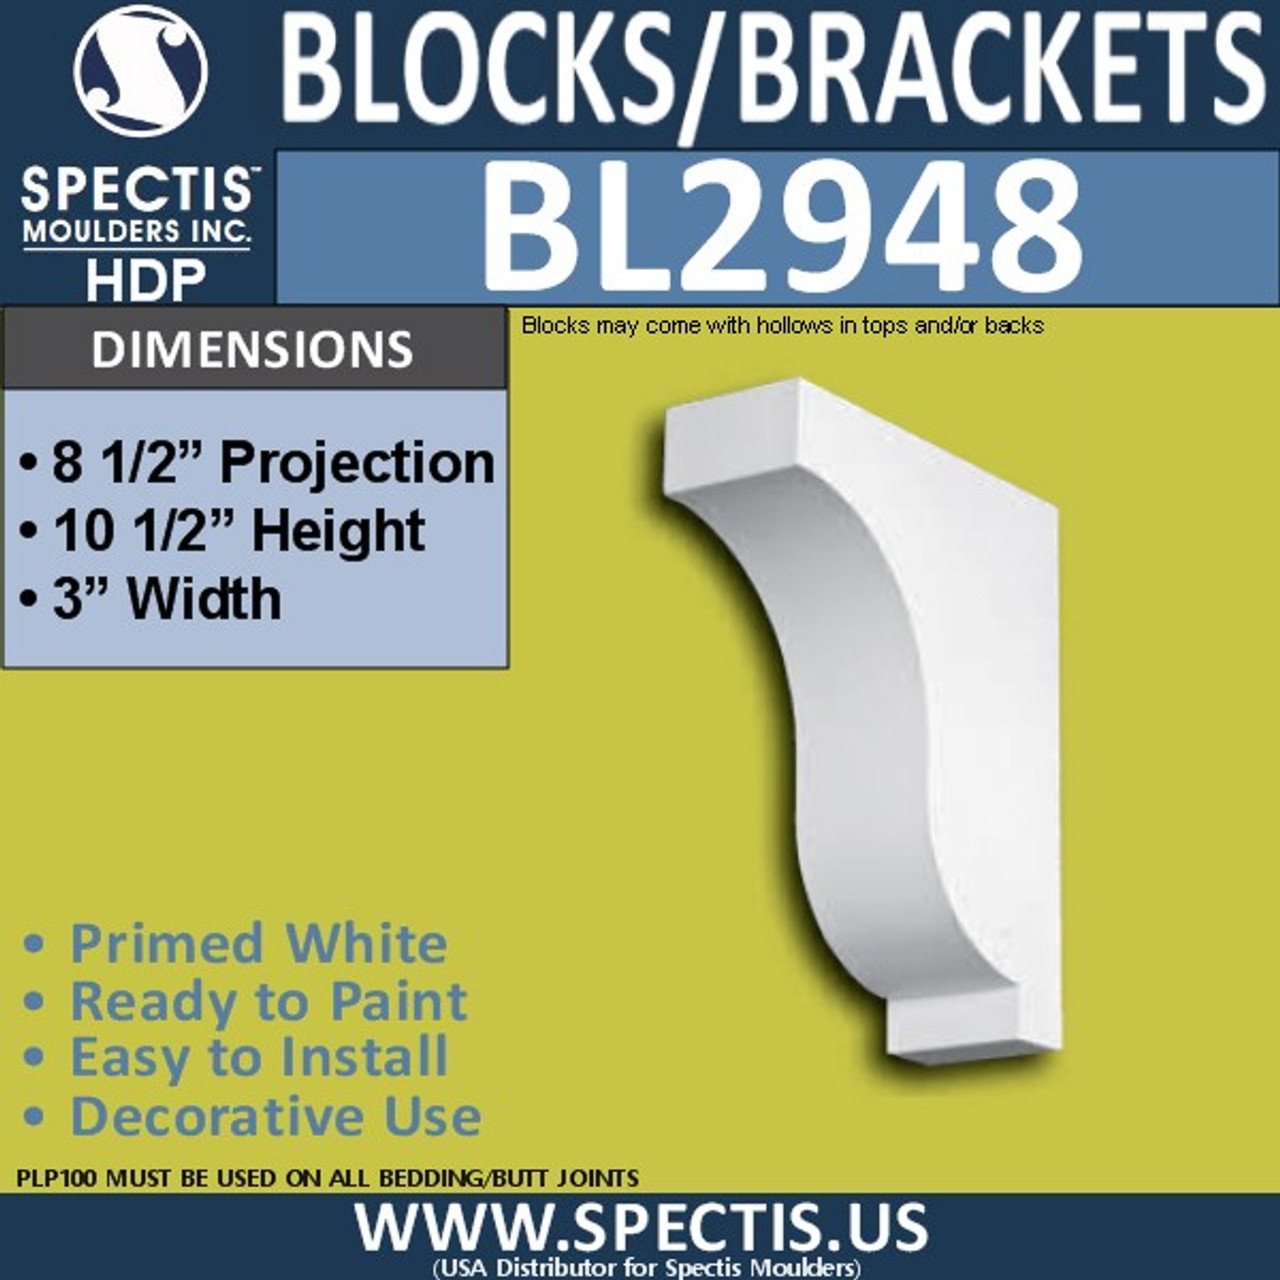 "BL2948 Eave Block or Bracket 3""W x 8.5""H x 8.5"" P"